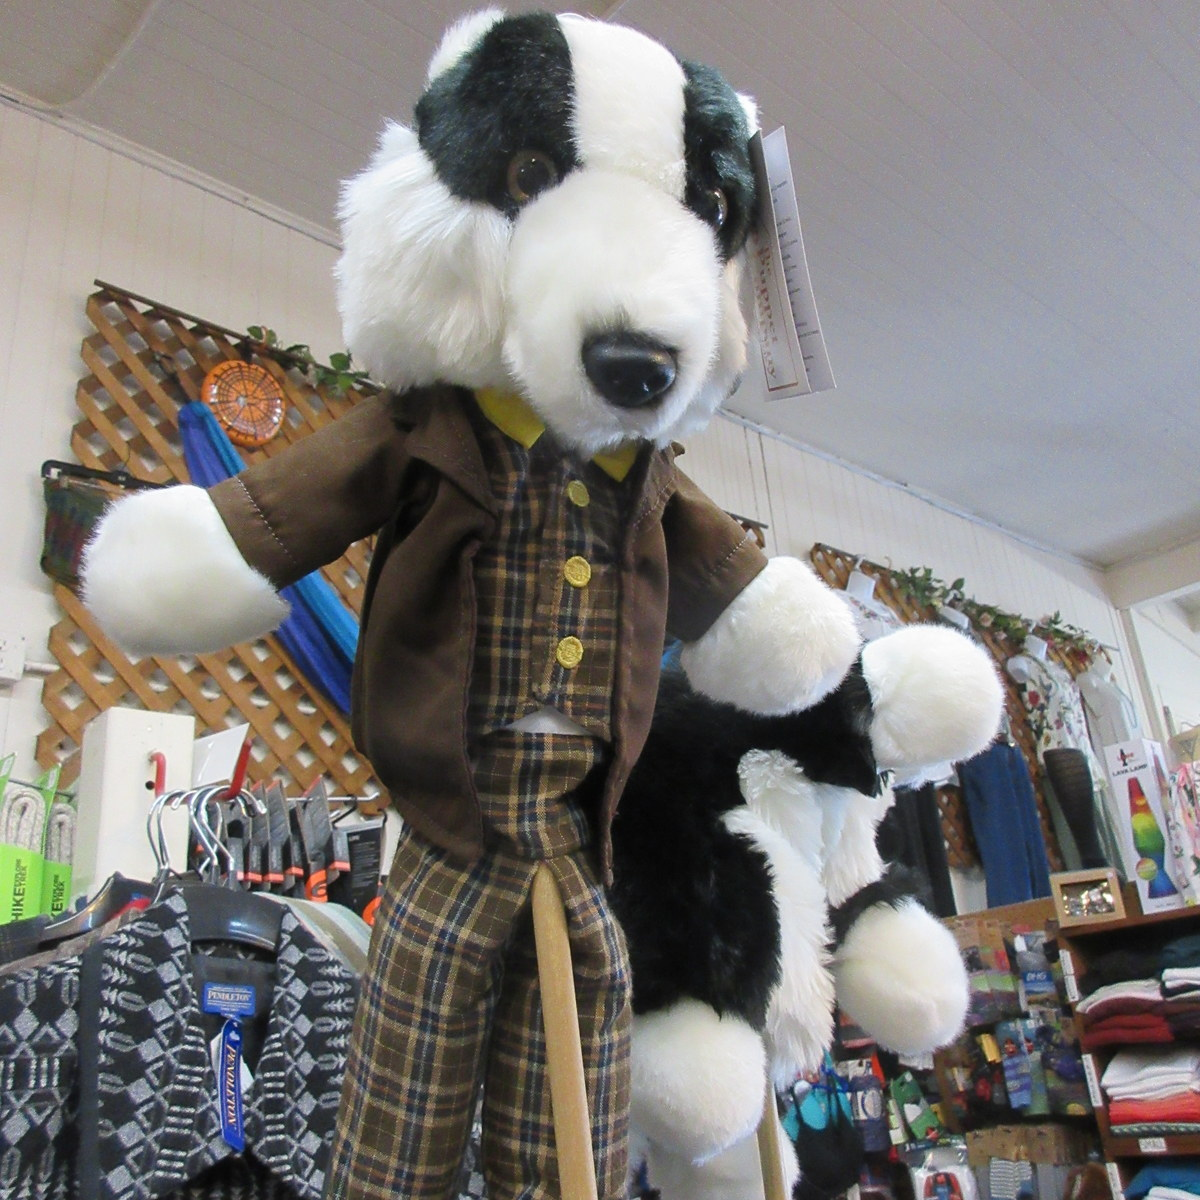 Dressed Badger Puppet from the Puppet Company